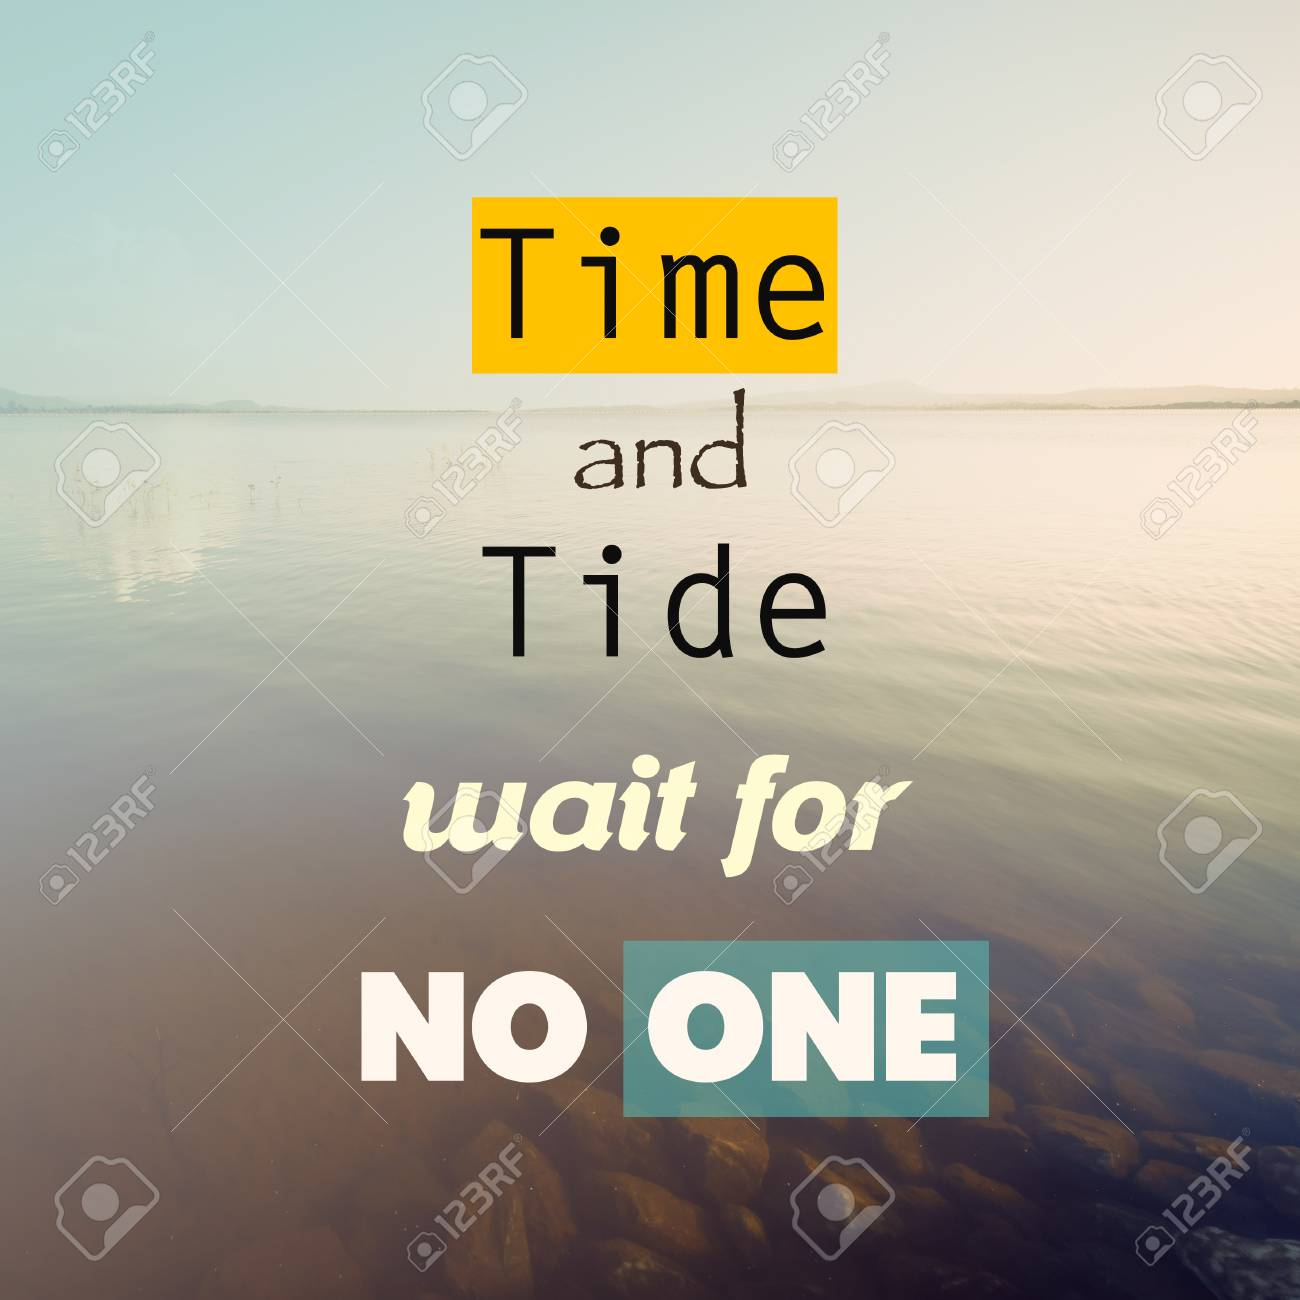 time and tide waits for none quotes